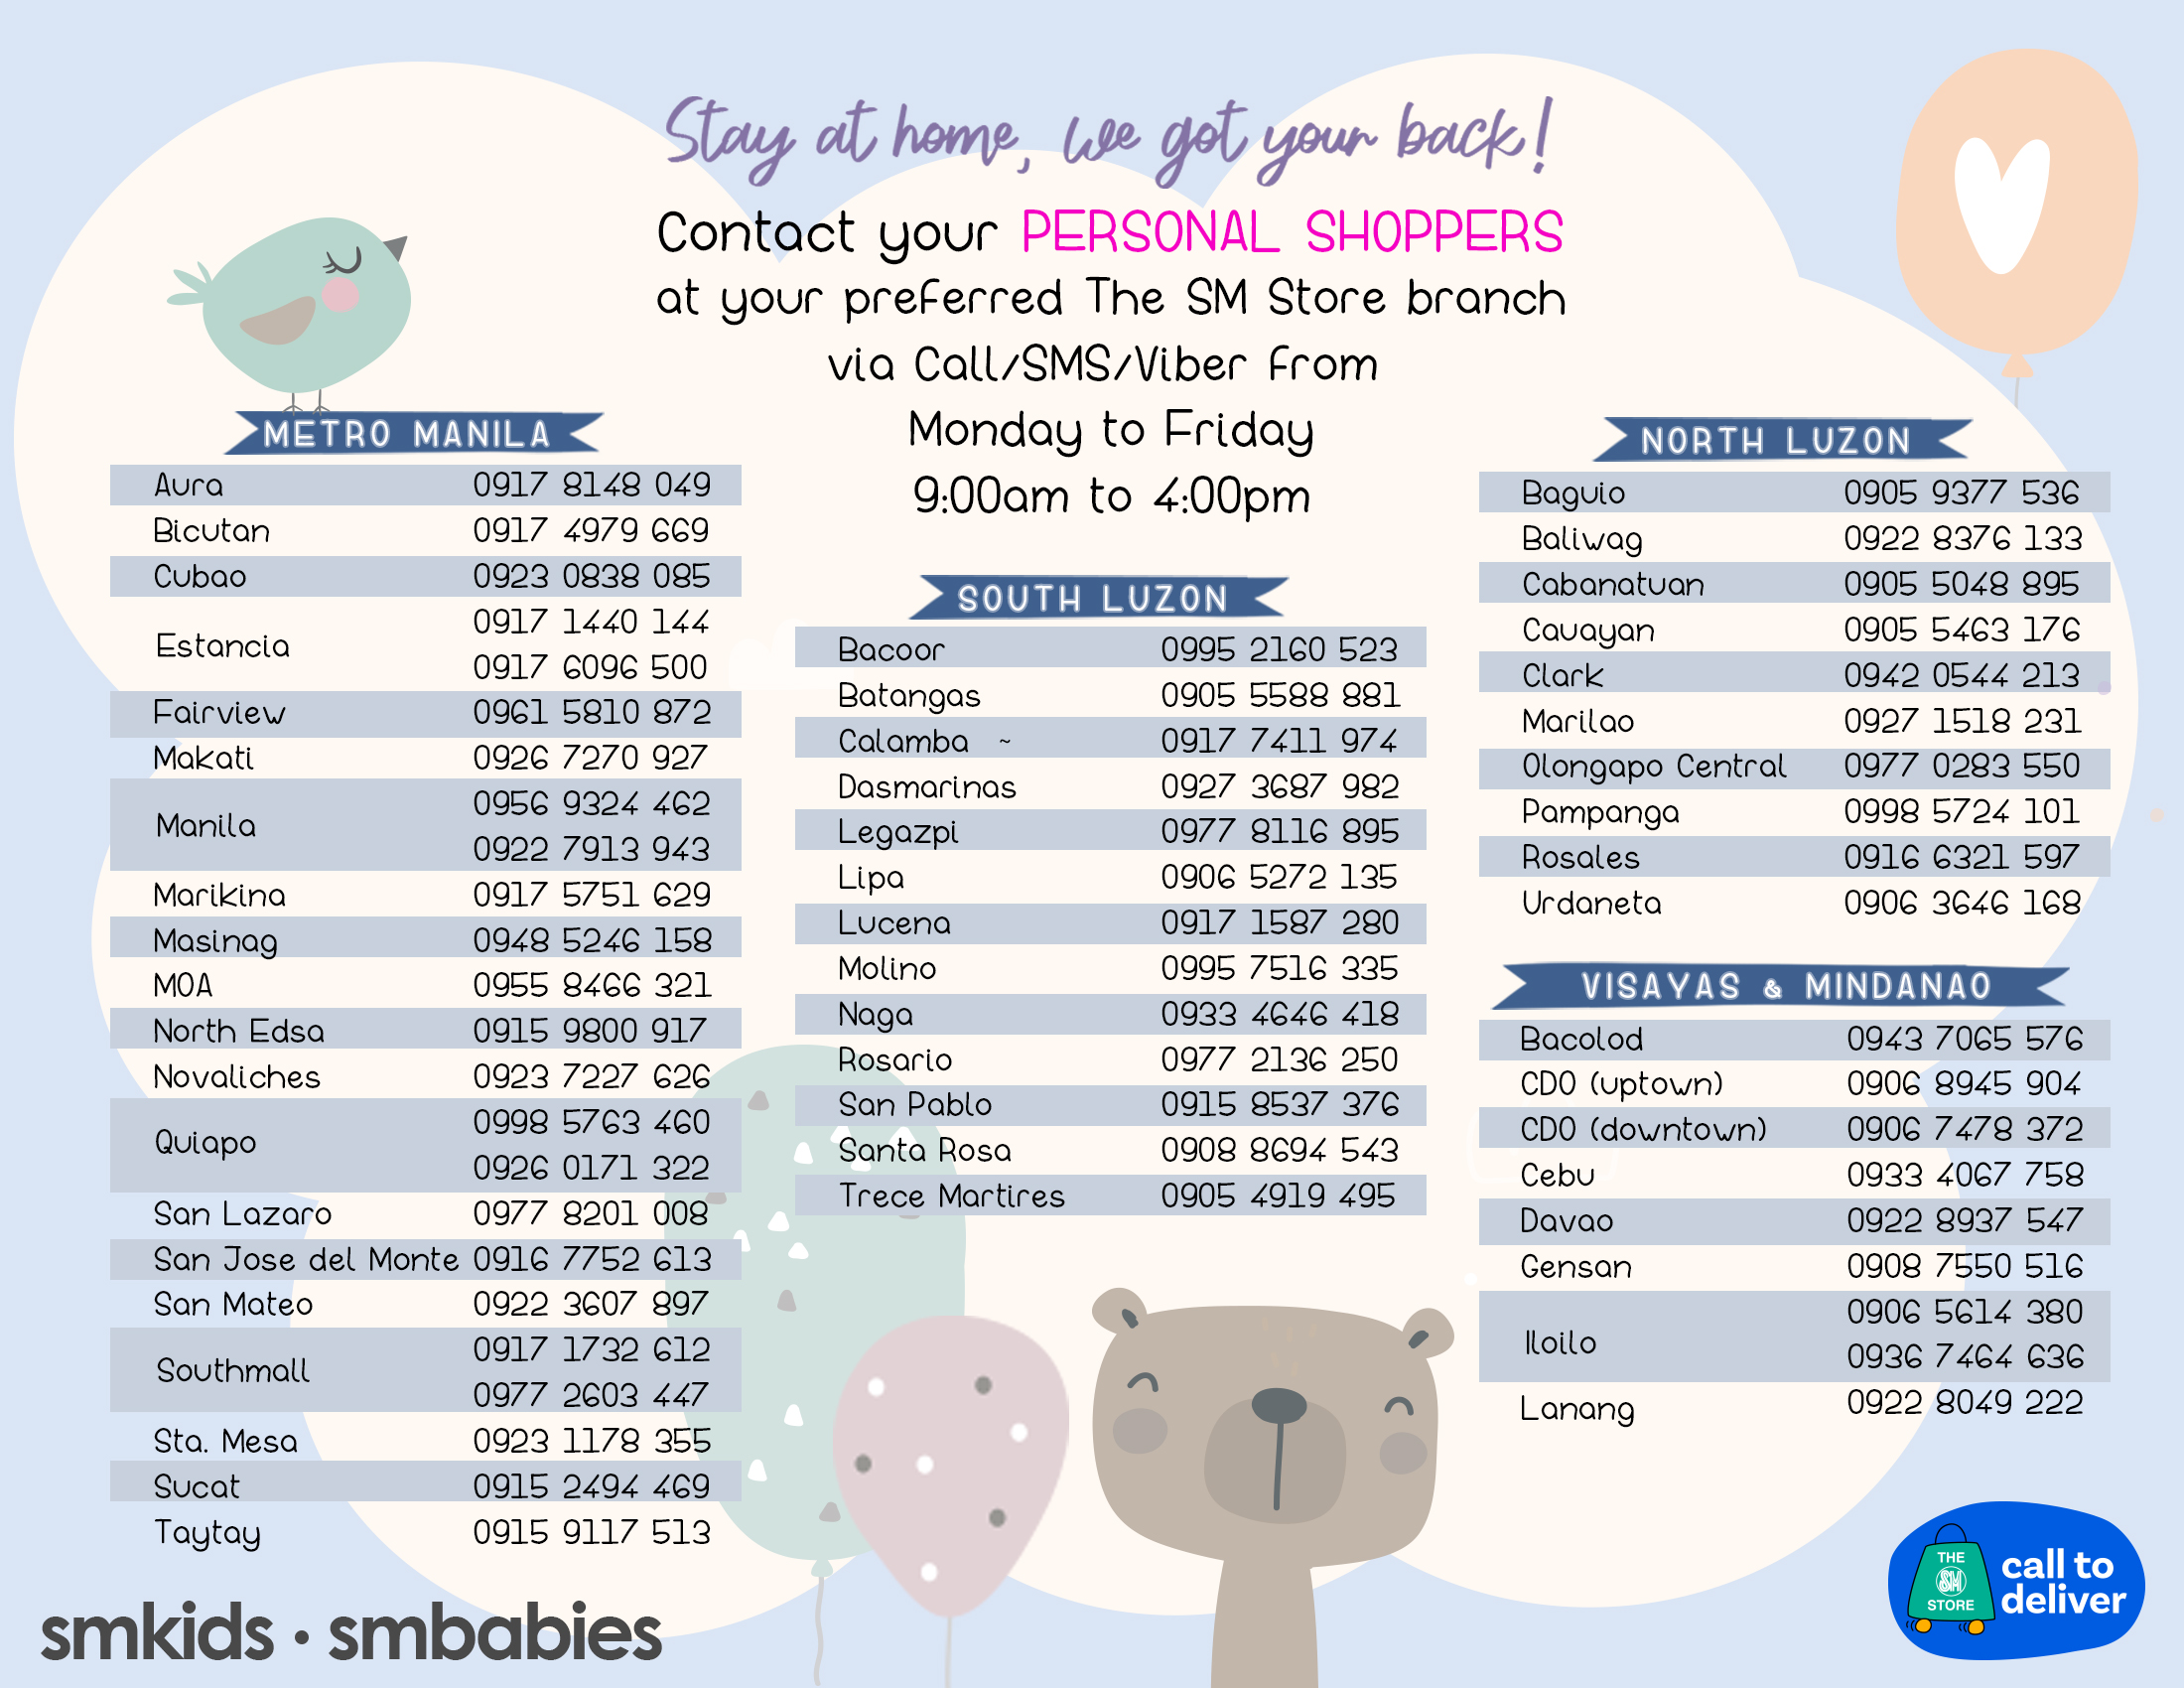 SM Personal Shopper contact numbers